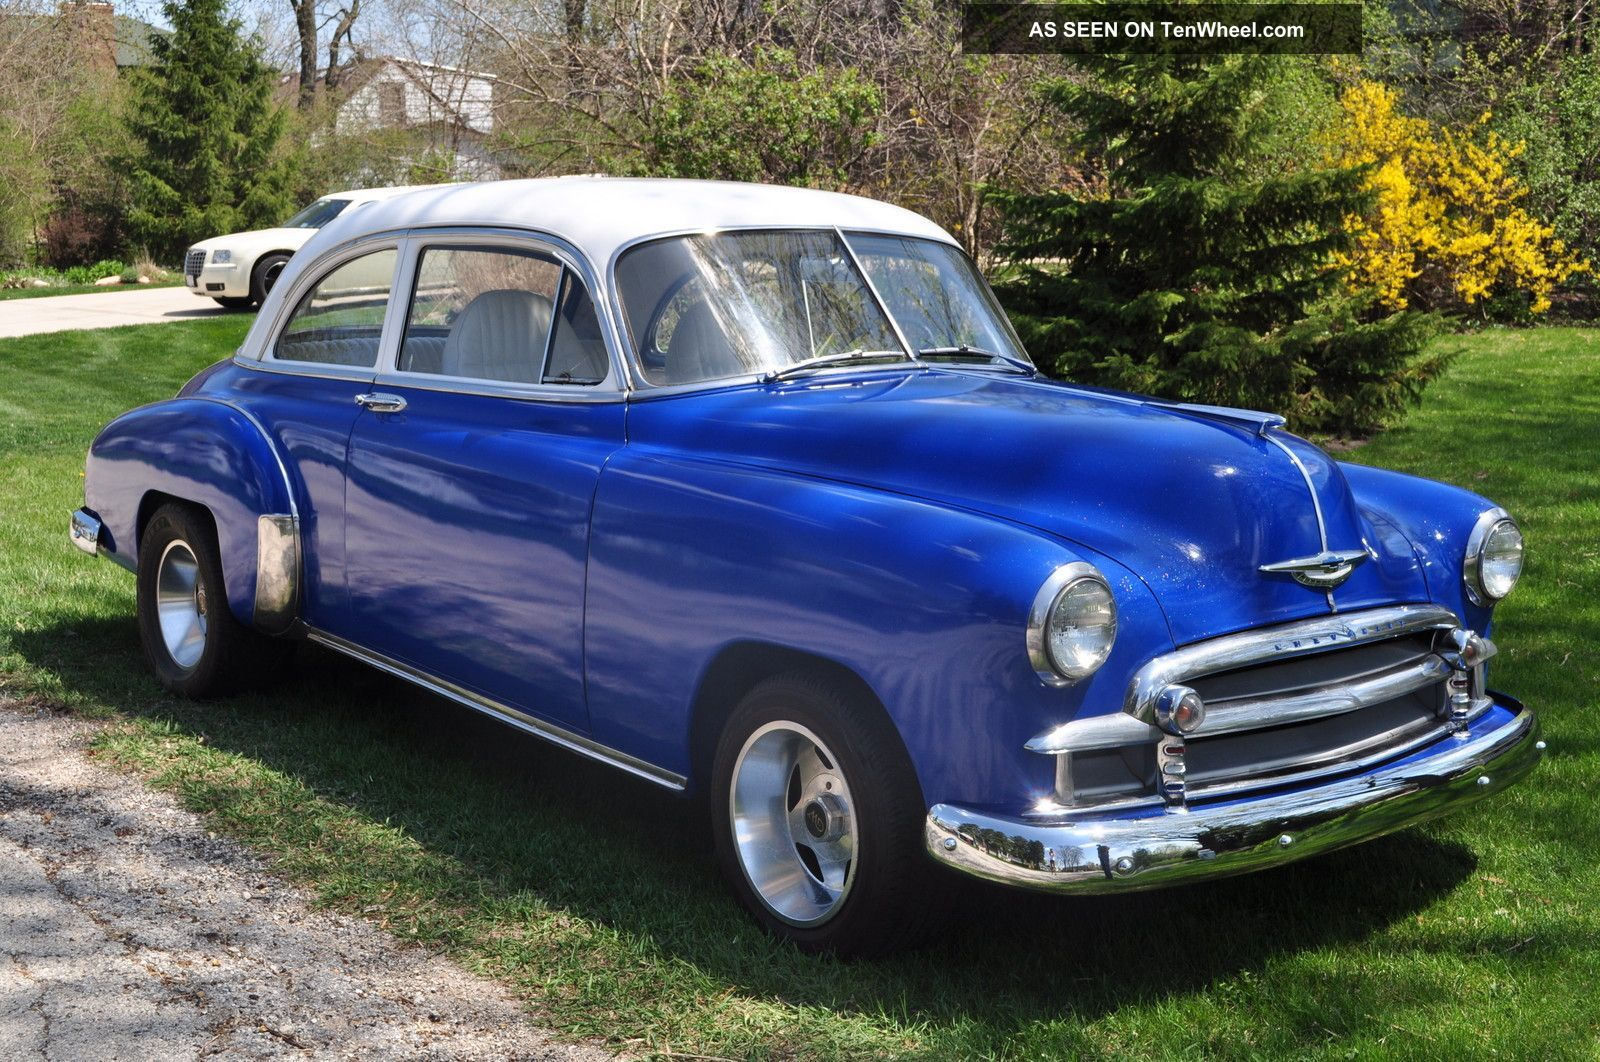 All Chevy 1952 chevy styleline parts : Image result for 1949 Chevy Coupe | 1949 Styleline Deluxe Chevy ...